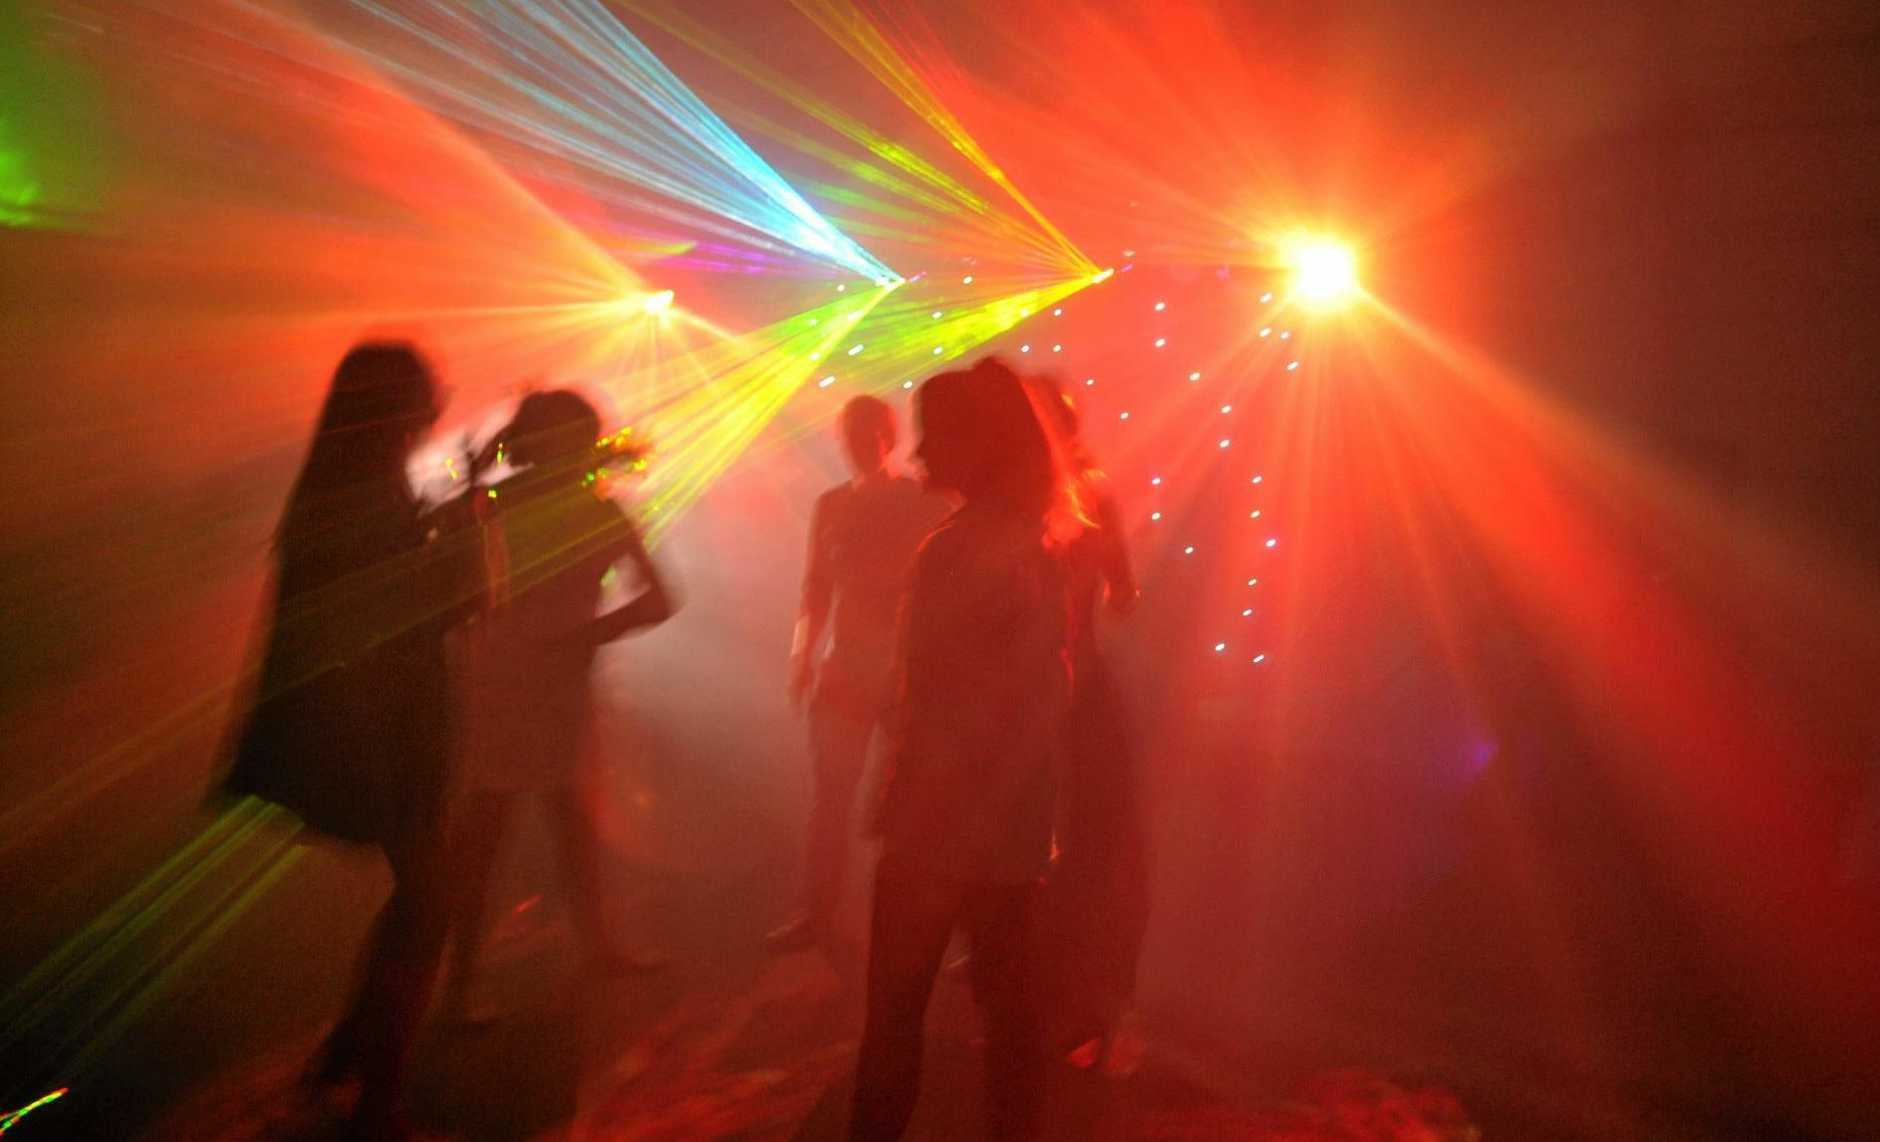 A North Coast farmer has been fined $36,000 for holding unapproved raves on his property.